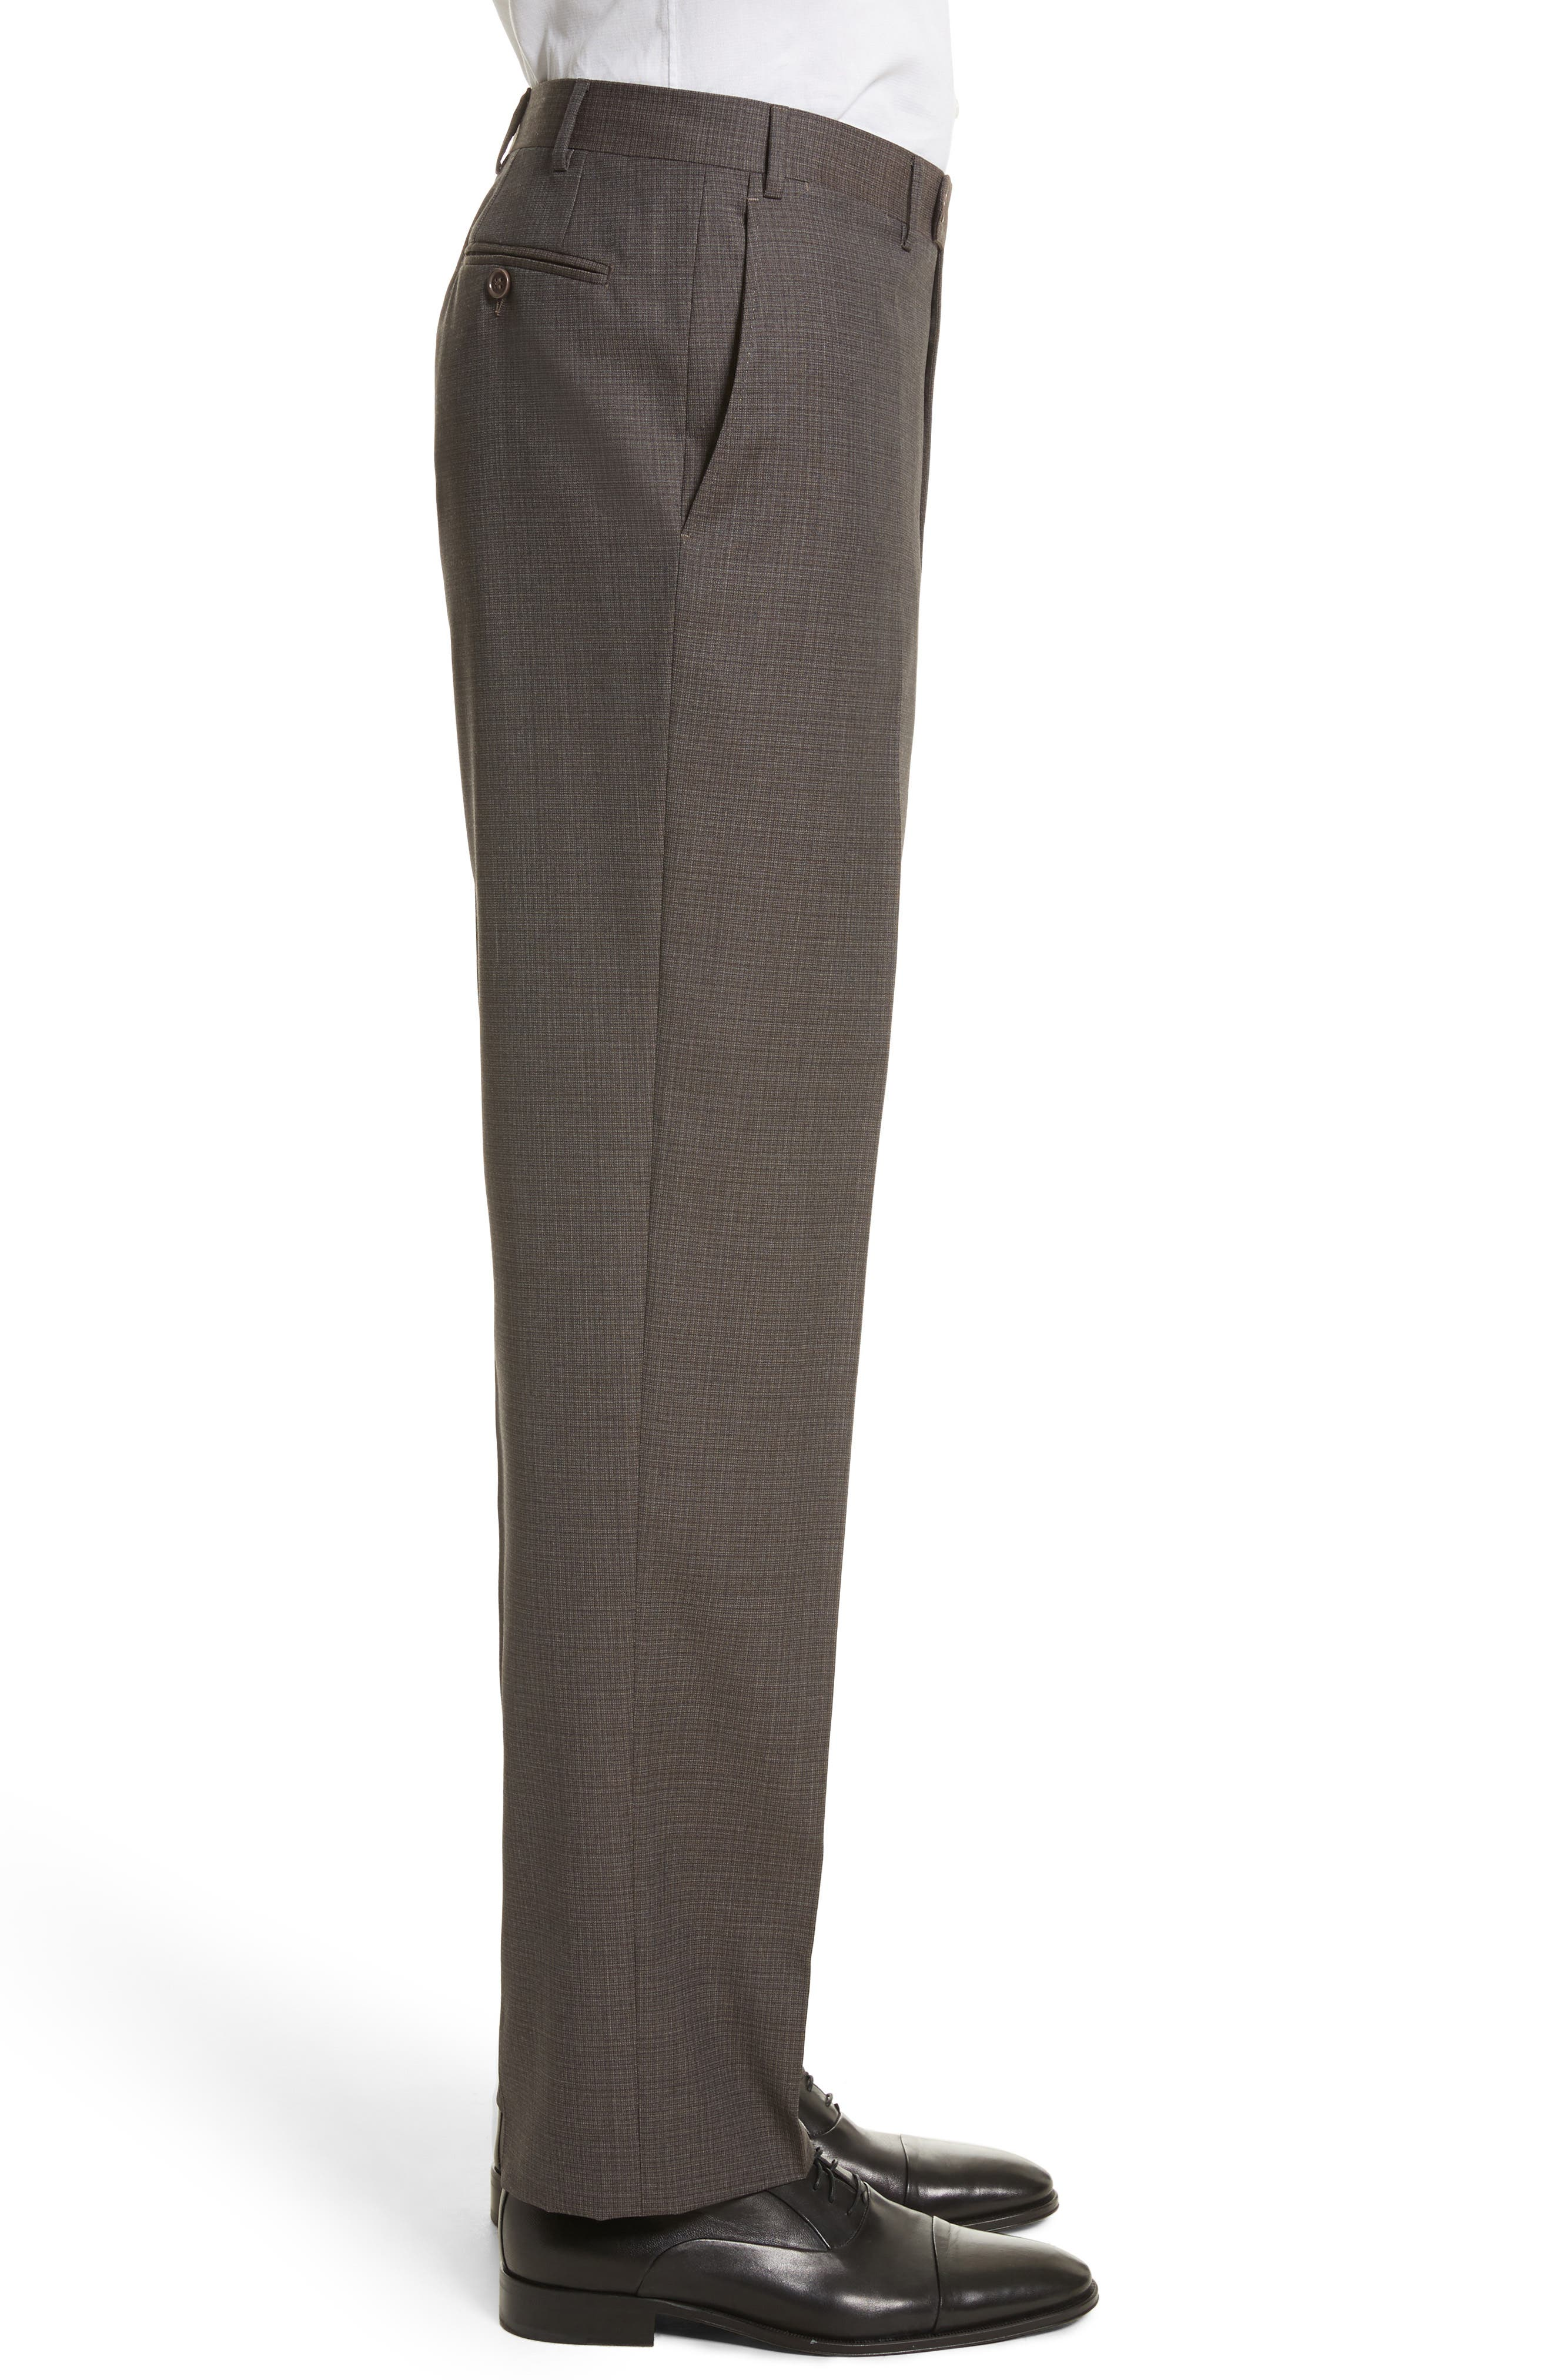 Flat Front Check Wool Trousers,                             Alternate thumbnail 4, color,                             251